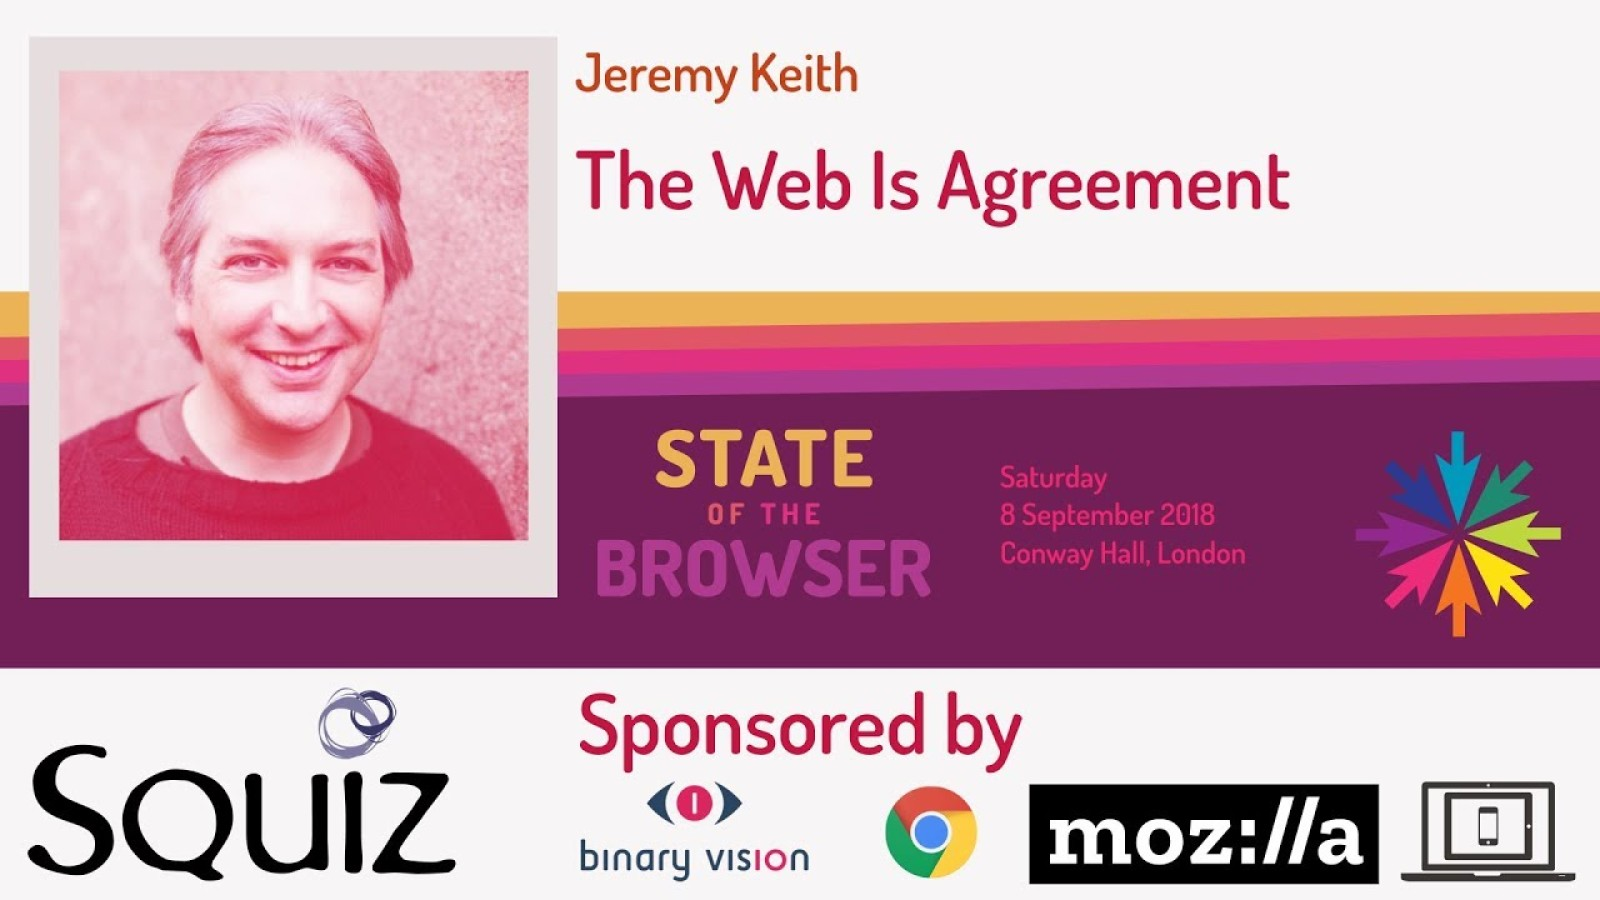 The Web Is Agreement